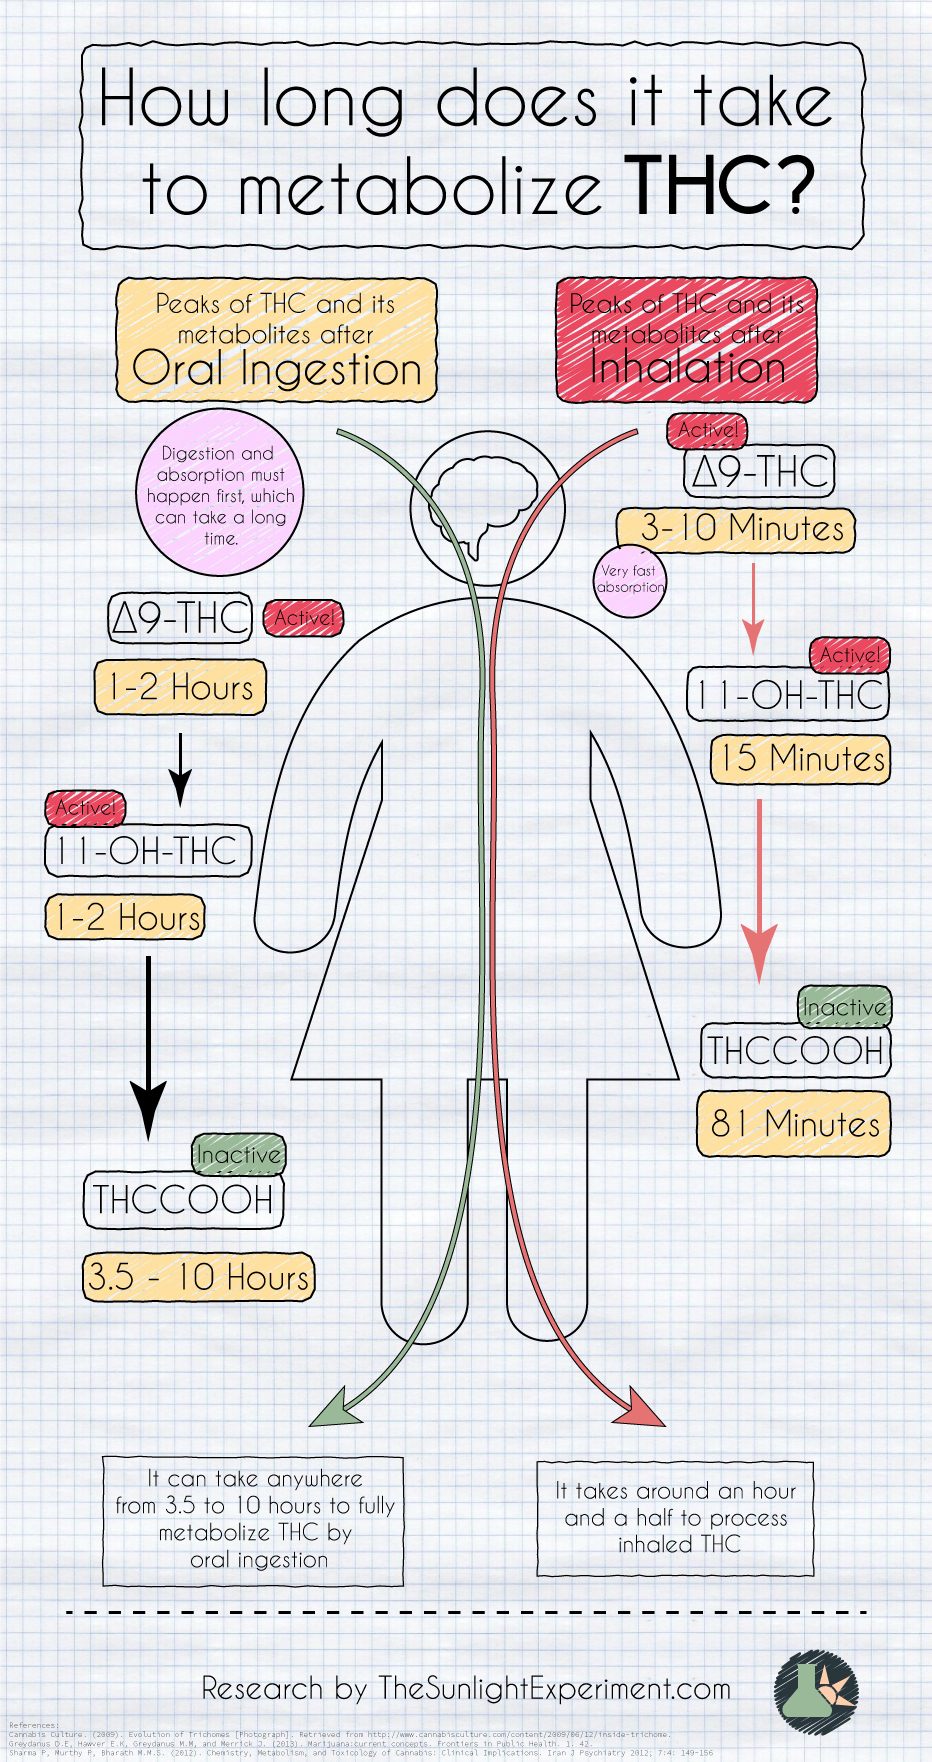 How long it takes to metabolize thc infographic